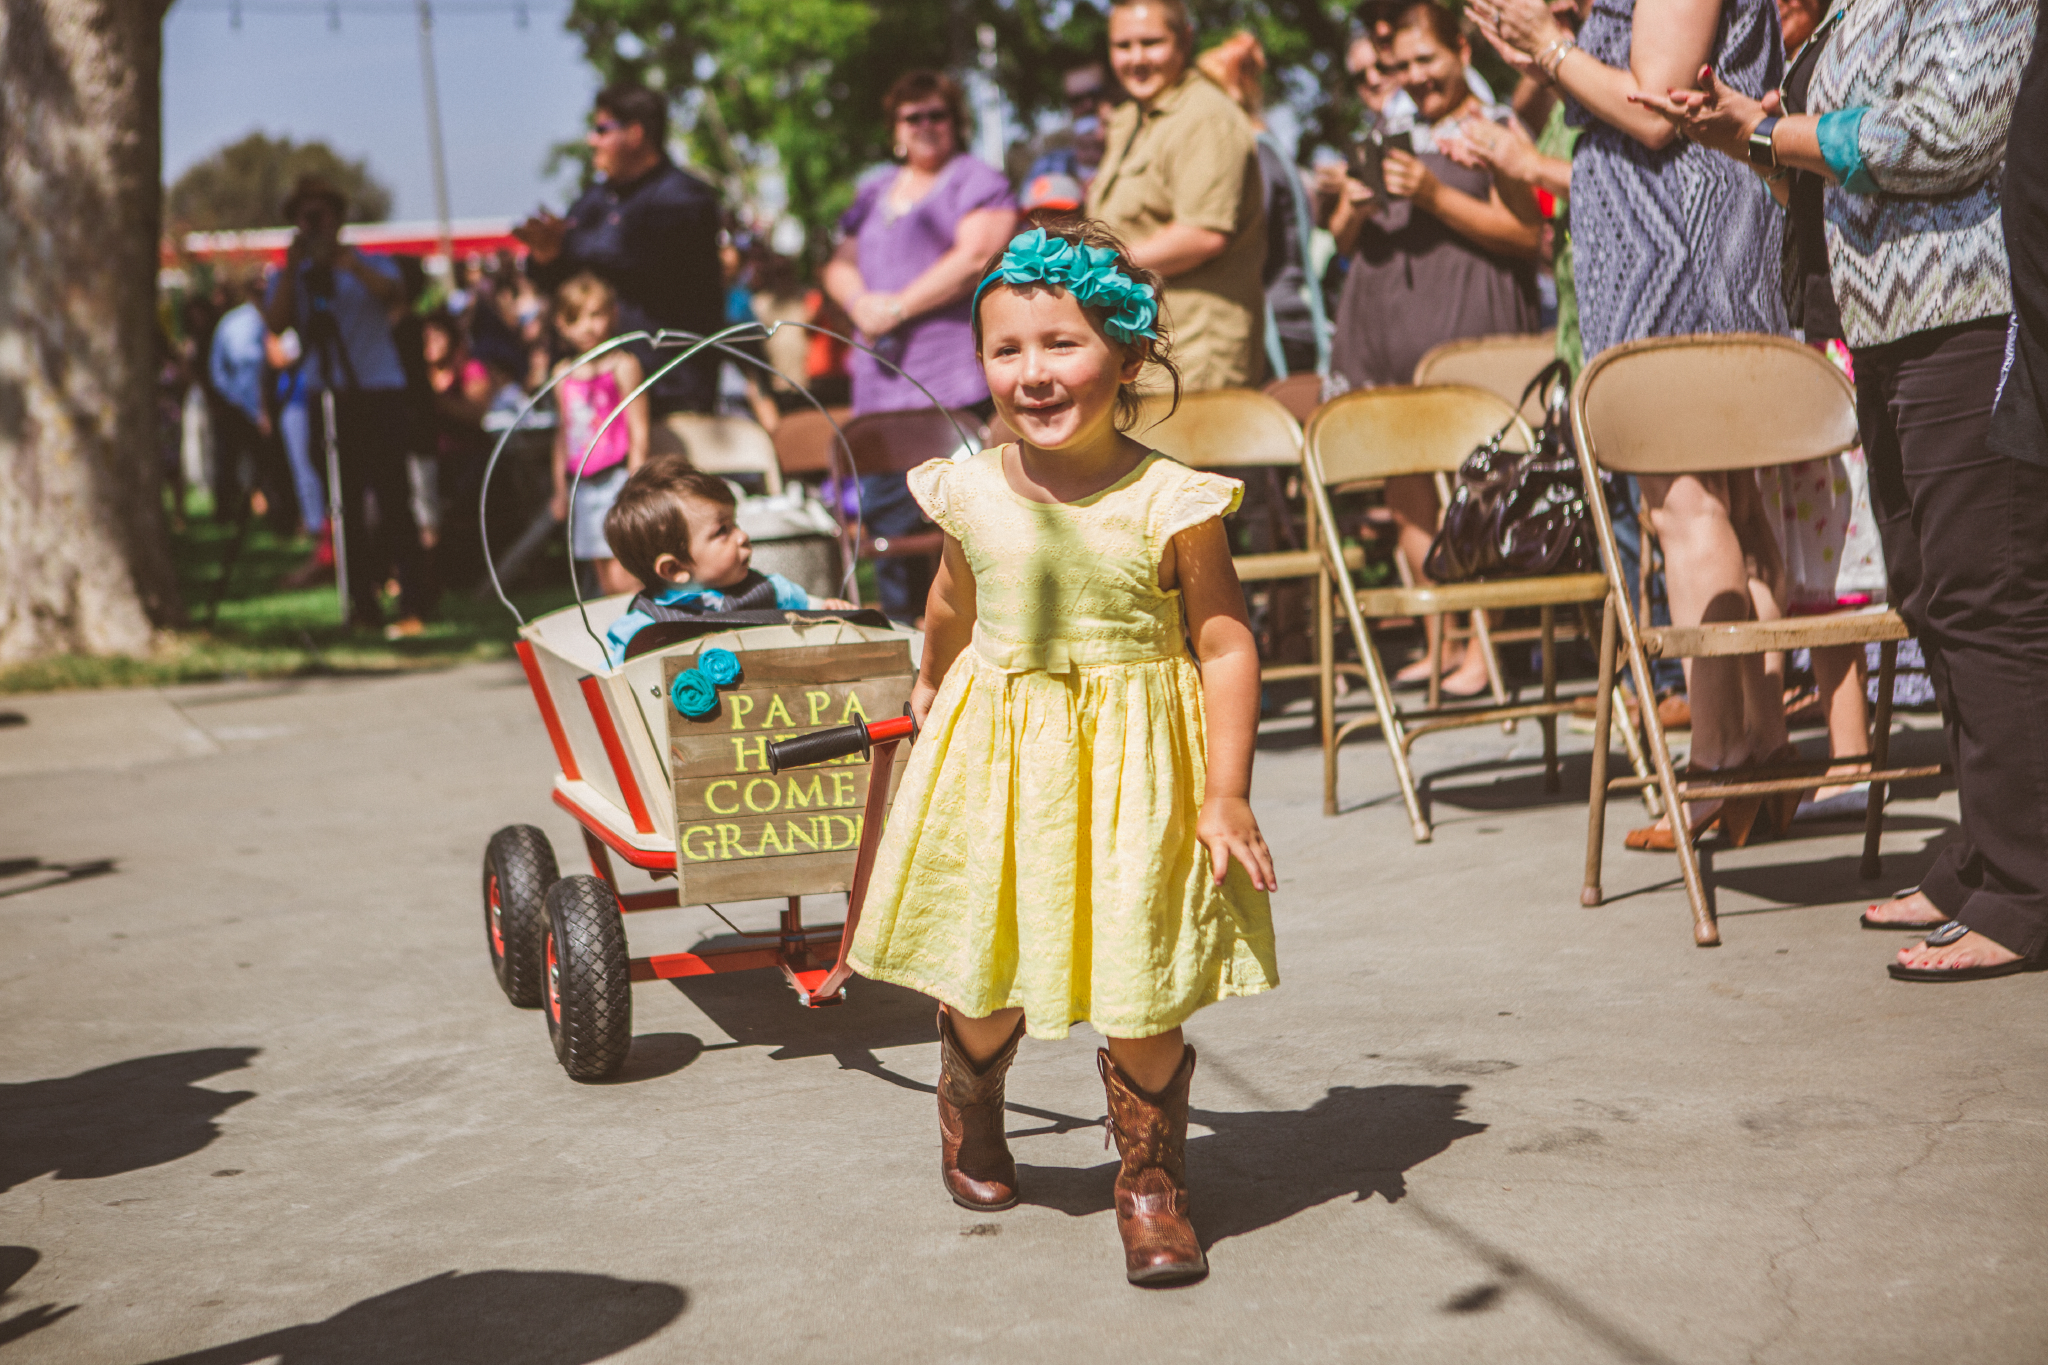 san diego wedding   photographer   child pulling wagon with baby inside